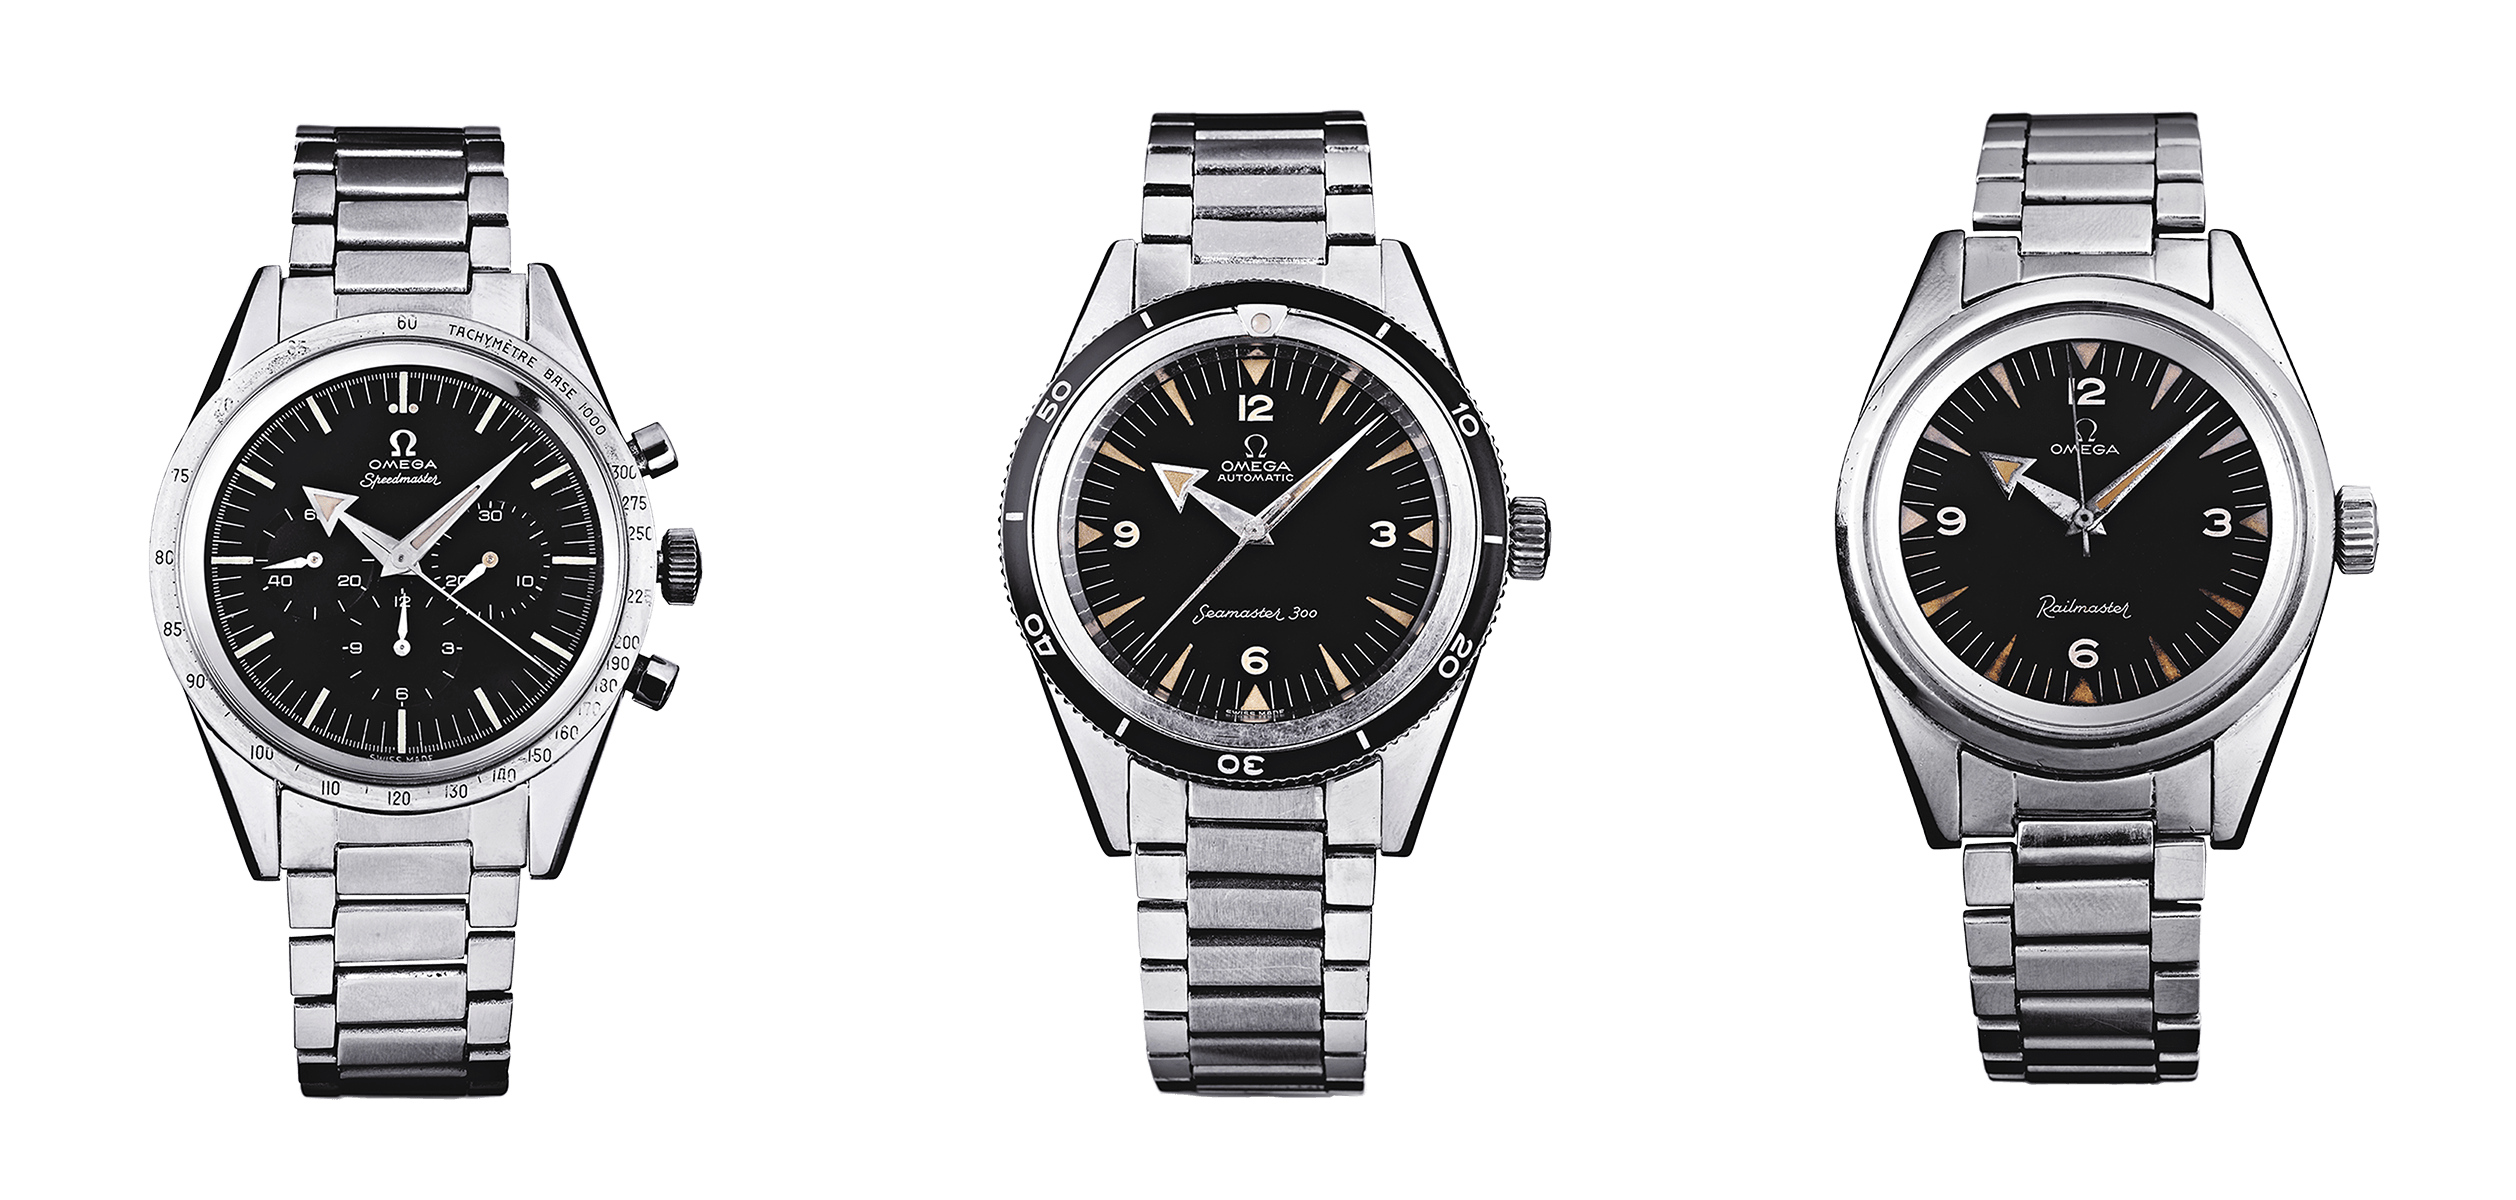 The 1957 professional watches by OMEGA: the Speedmaster, Seamaster 300 and Railmaster